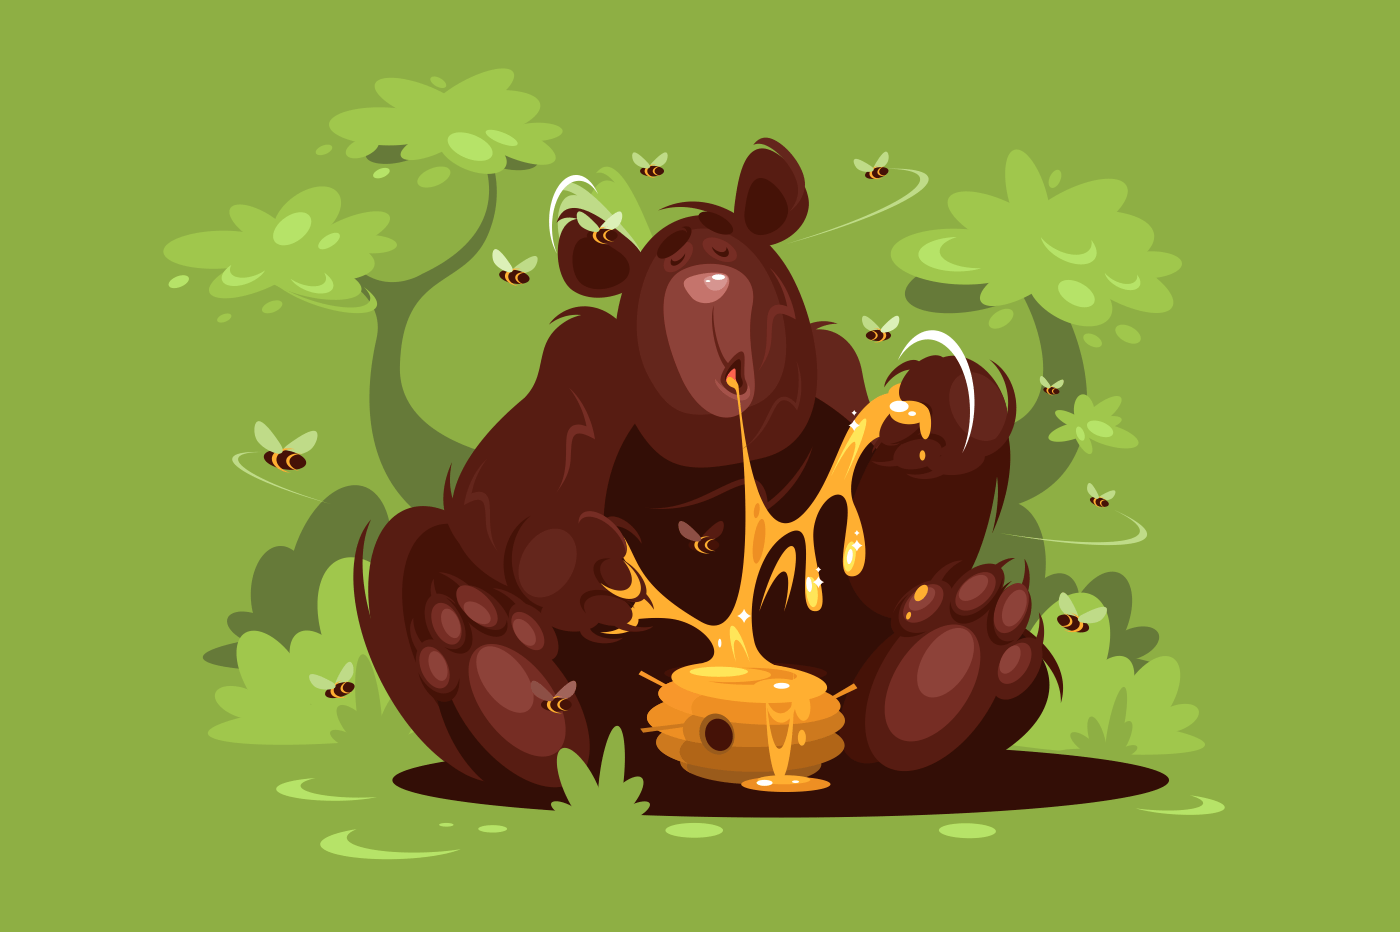 Brown bear eat sweet honey in green forest. Vector illustration